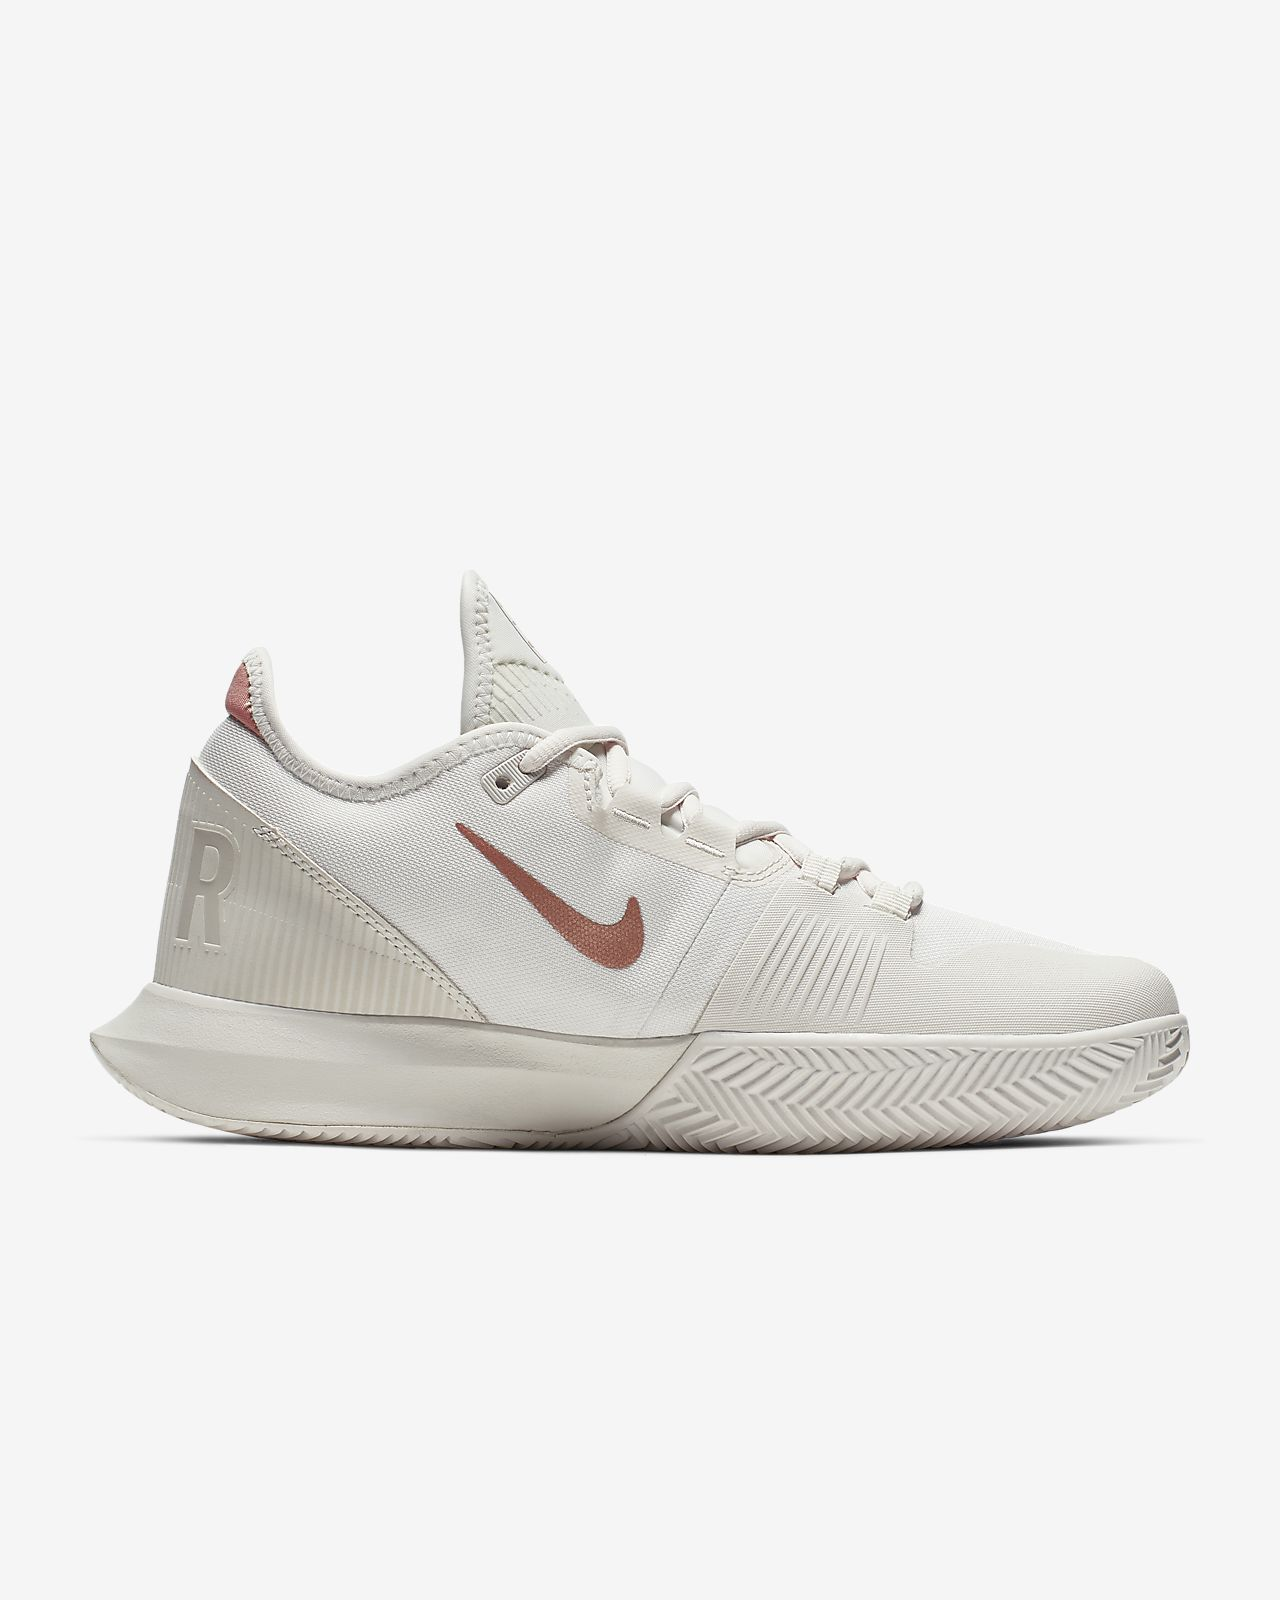 a2f2f923c NikeCourt Air Max Wildcard Women s Clay Tennis Shoe. Nike.com AU